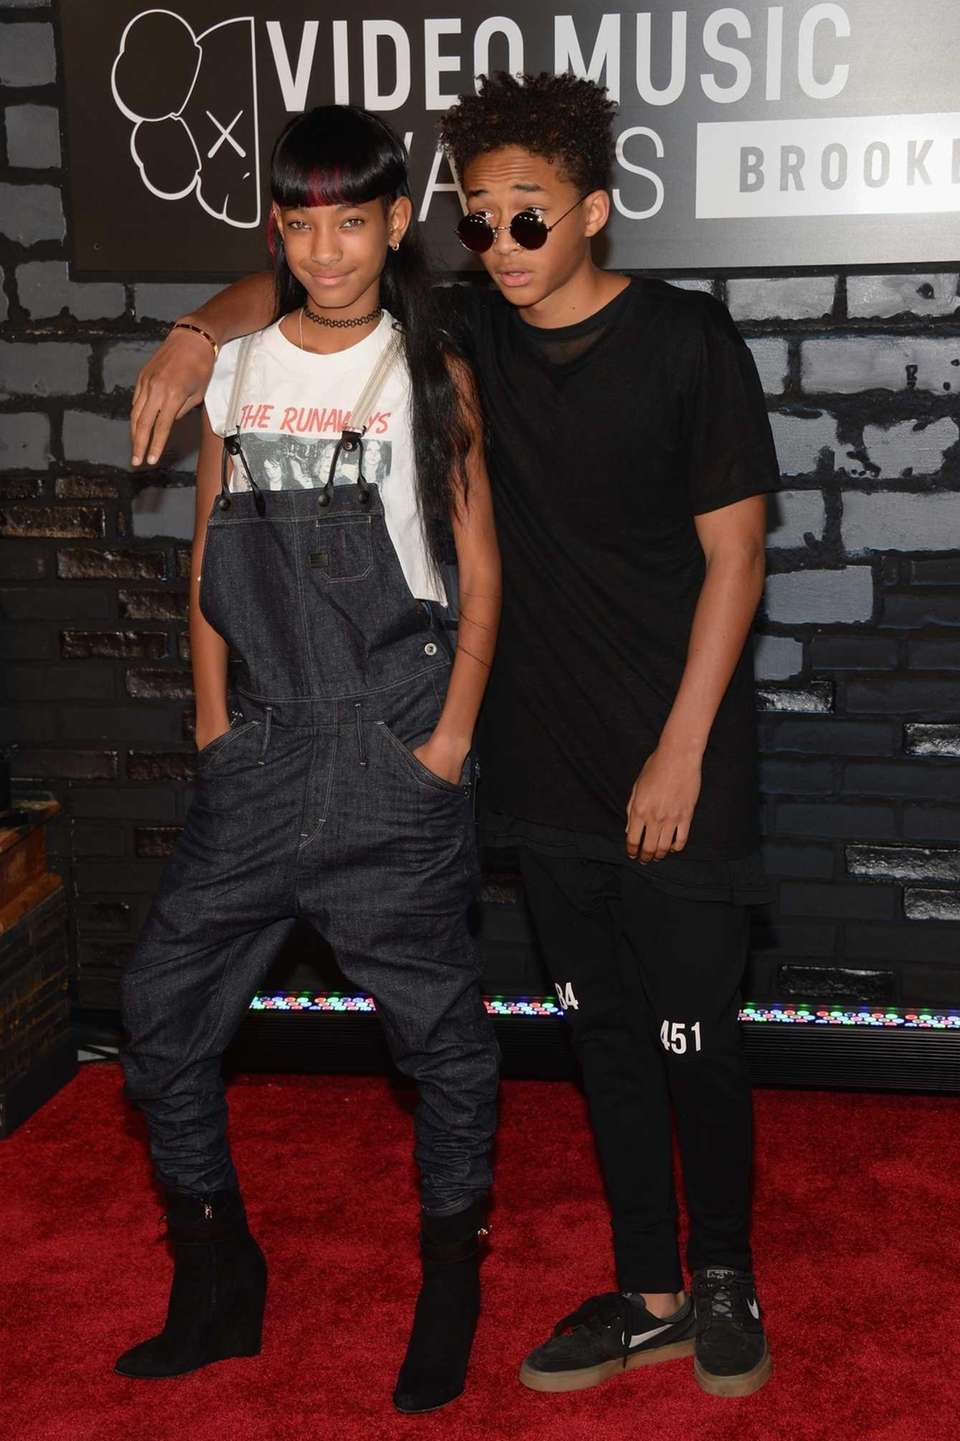 Siblings Willow and Jaden Smith attend the 2013